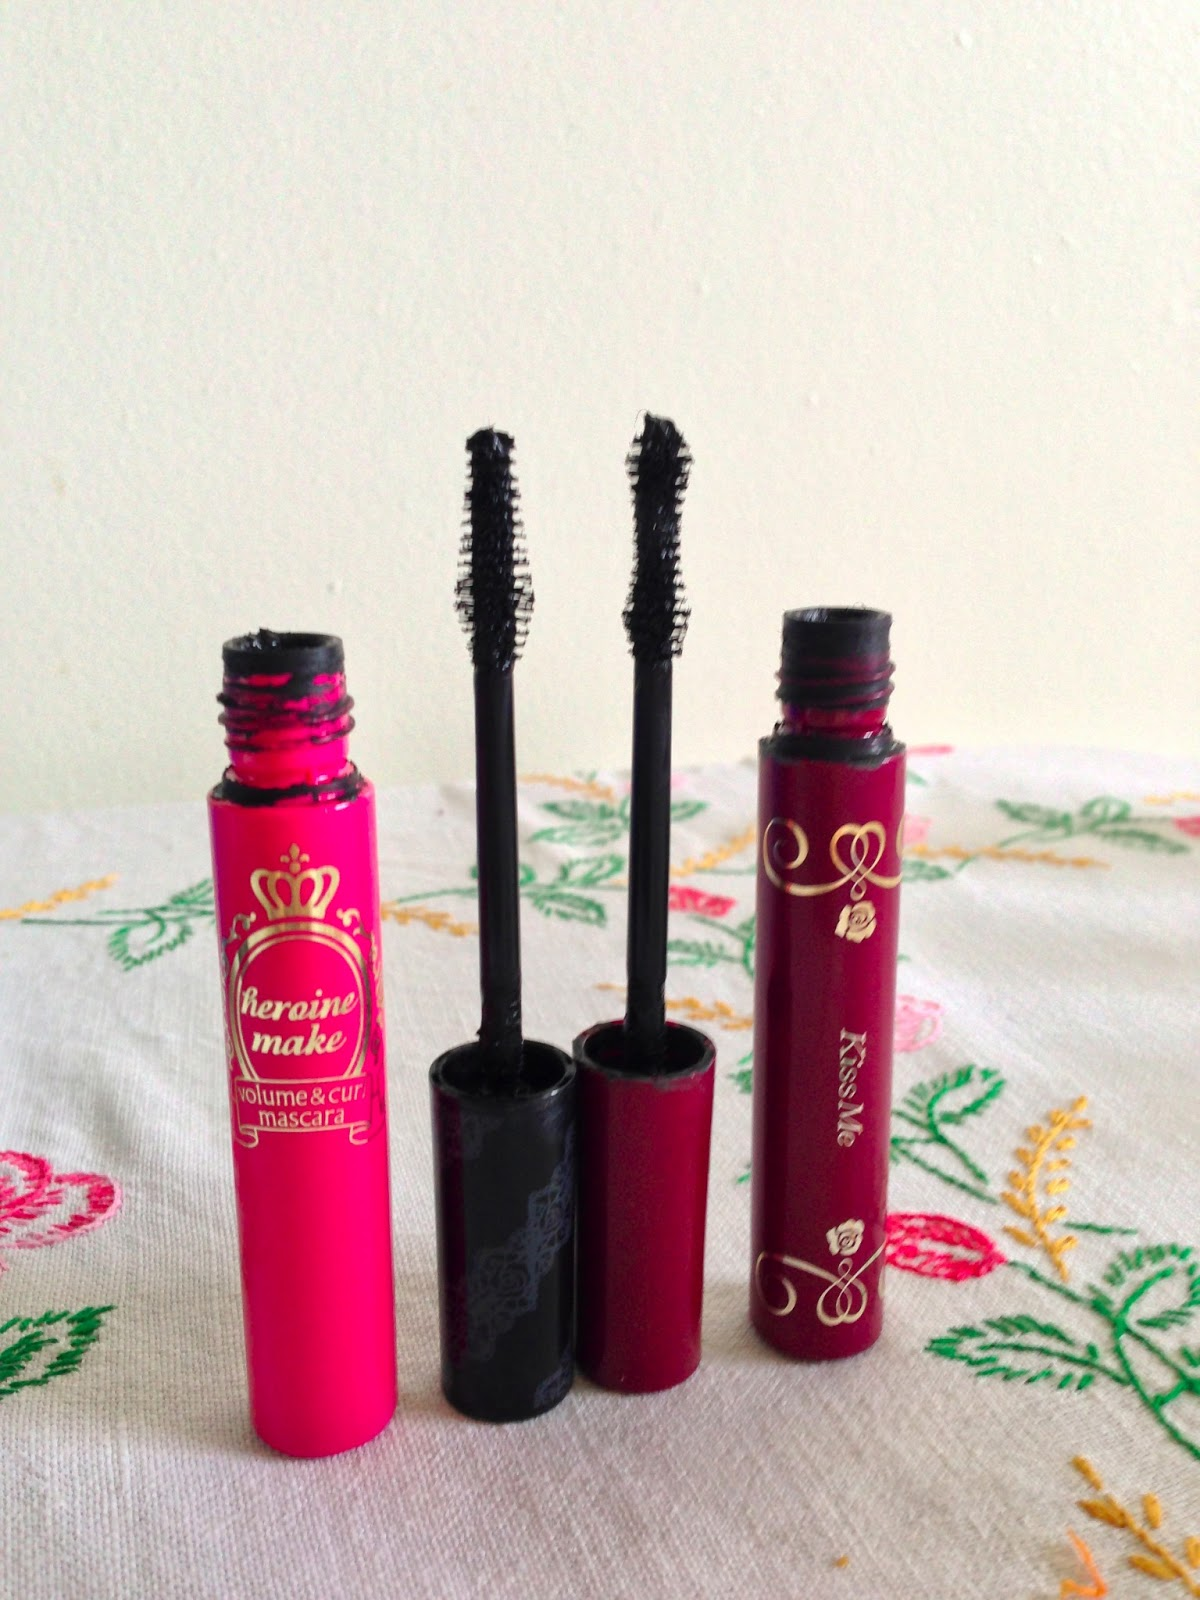 Kiss me mascara remover review